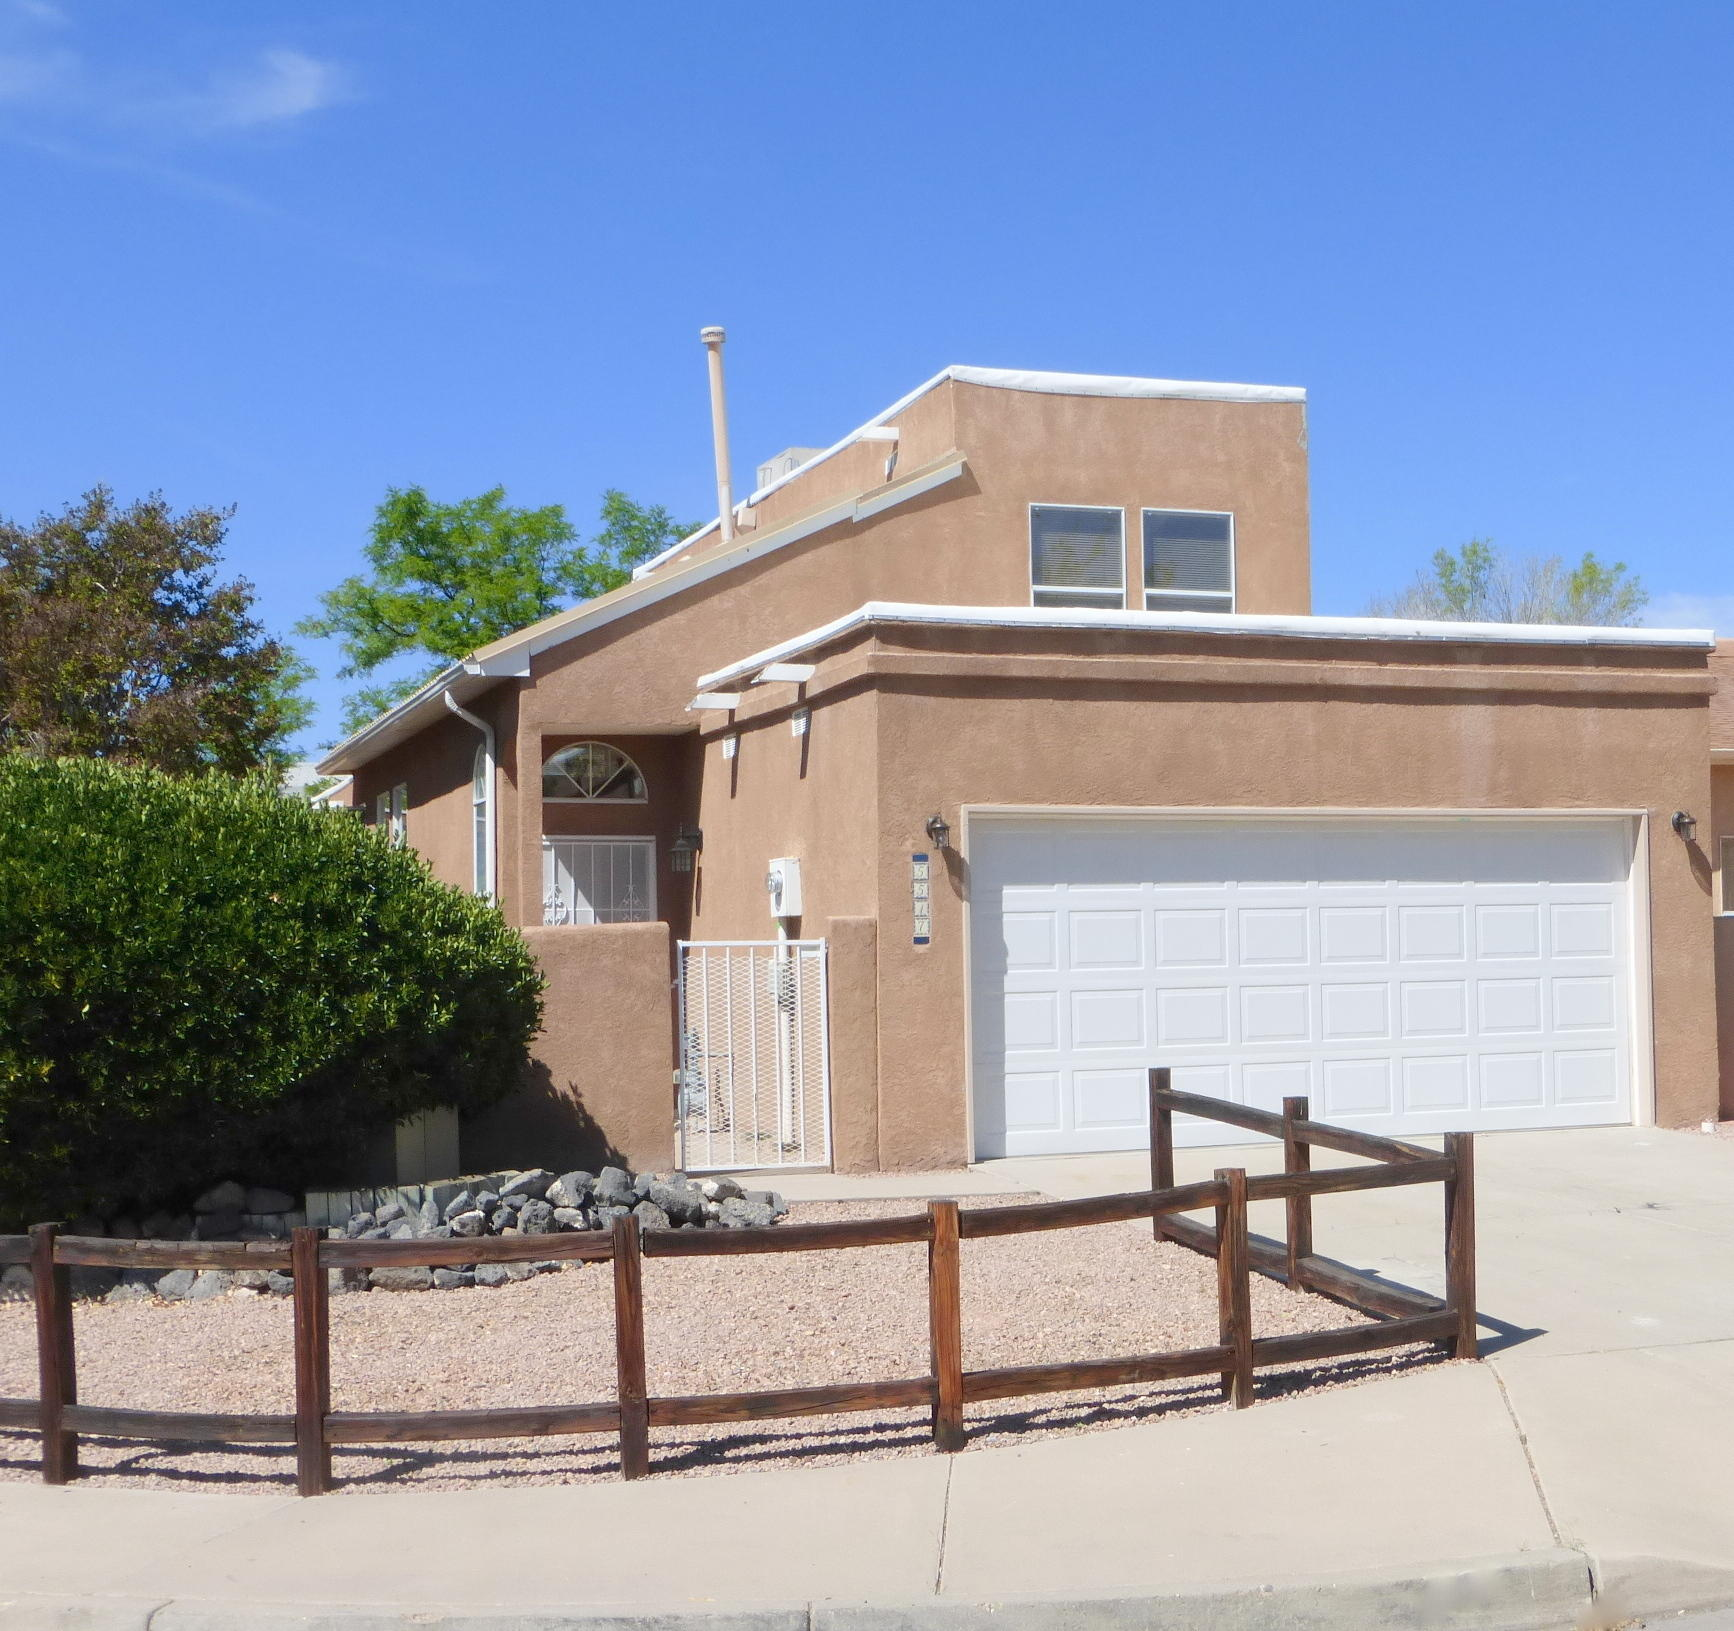 5517 BAER PLACE NW, Albuquerque, NM 87120 - Albuquerque, NM real estate listing